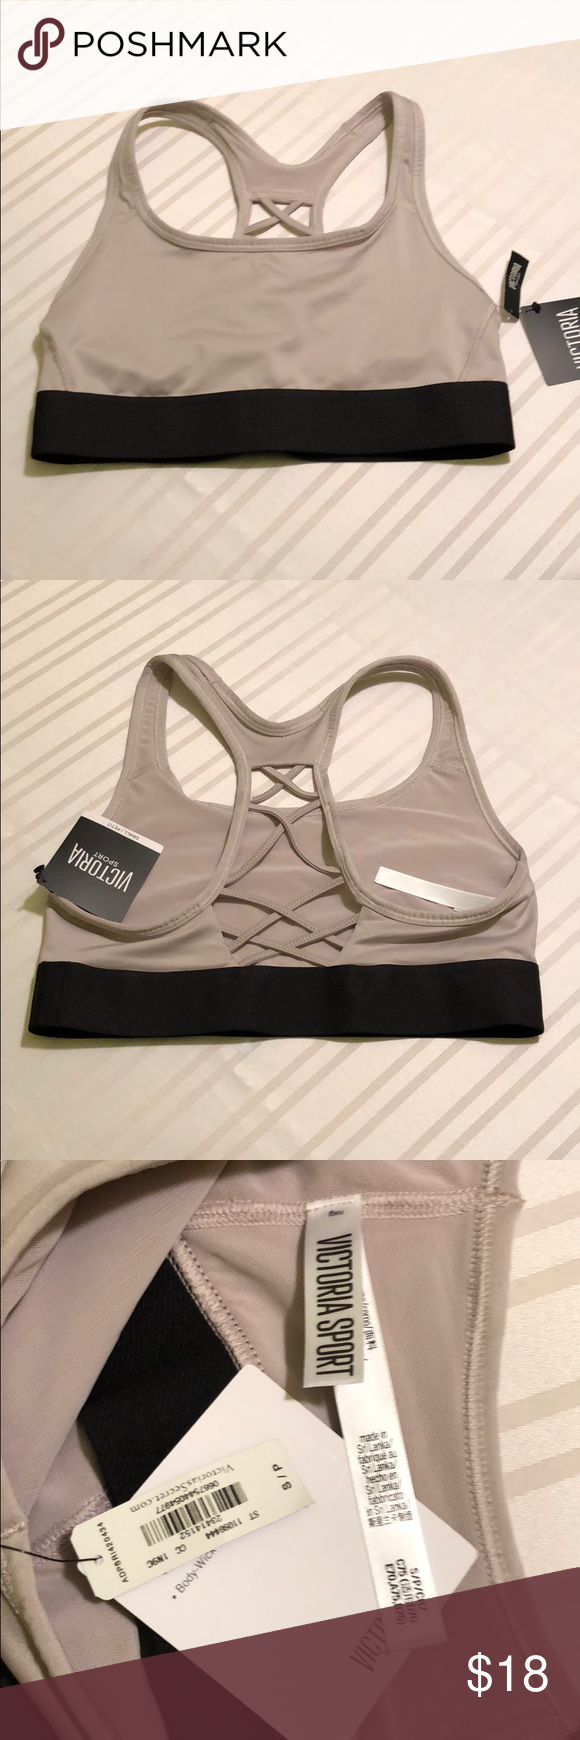 Nwt vsx strappy racerback sports bra brand new with tags according to the size chart also rh pinterest